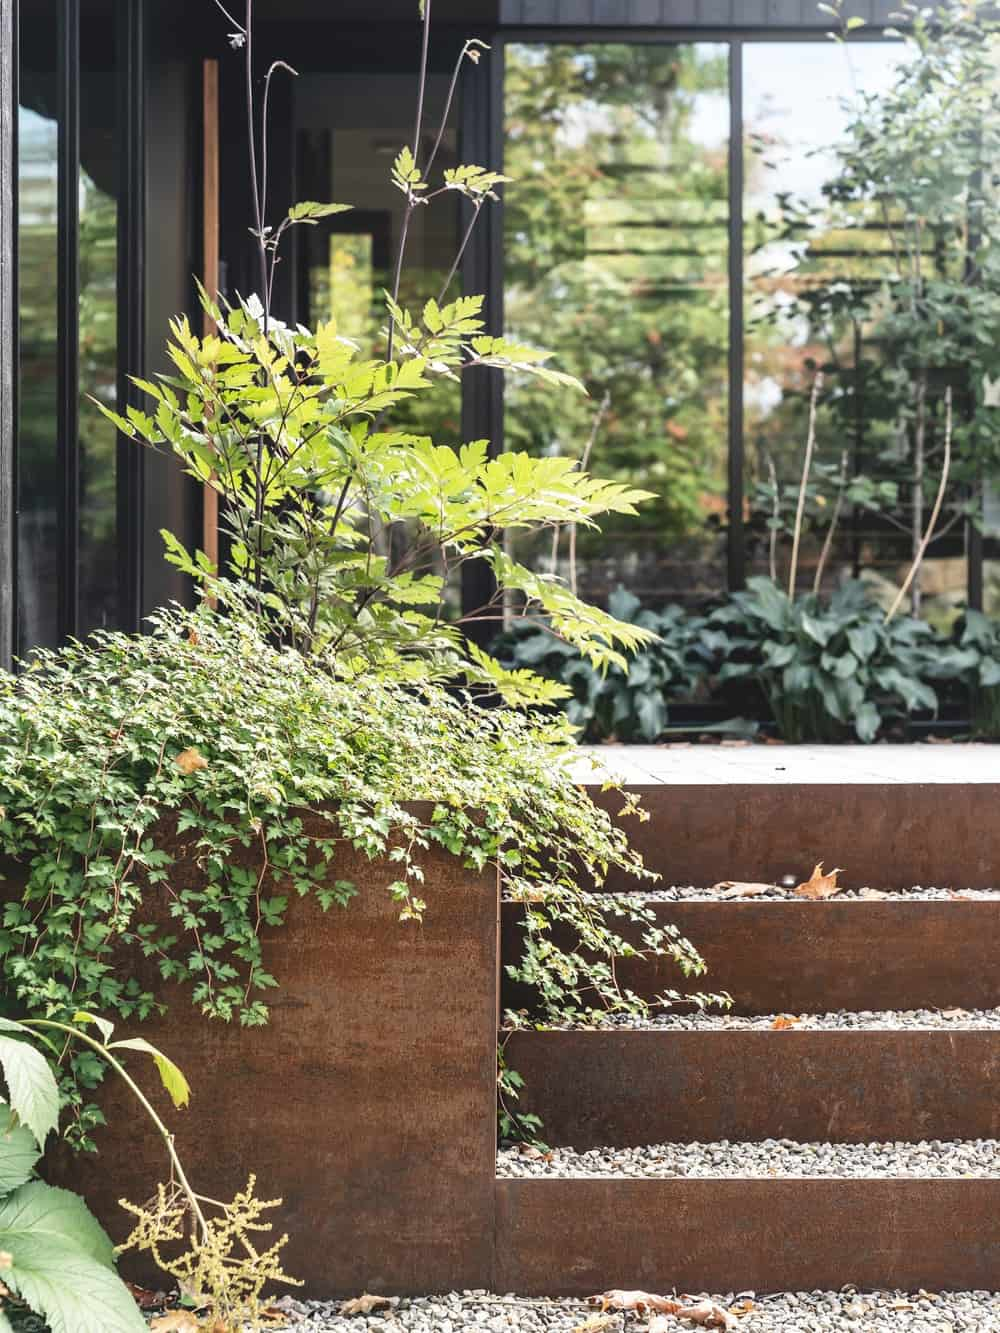 This is a close look at the planters and landscaping at the side of the concrete steps.